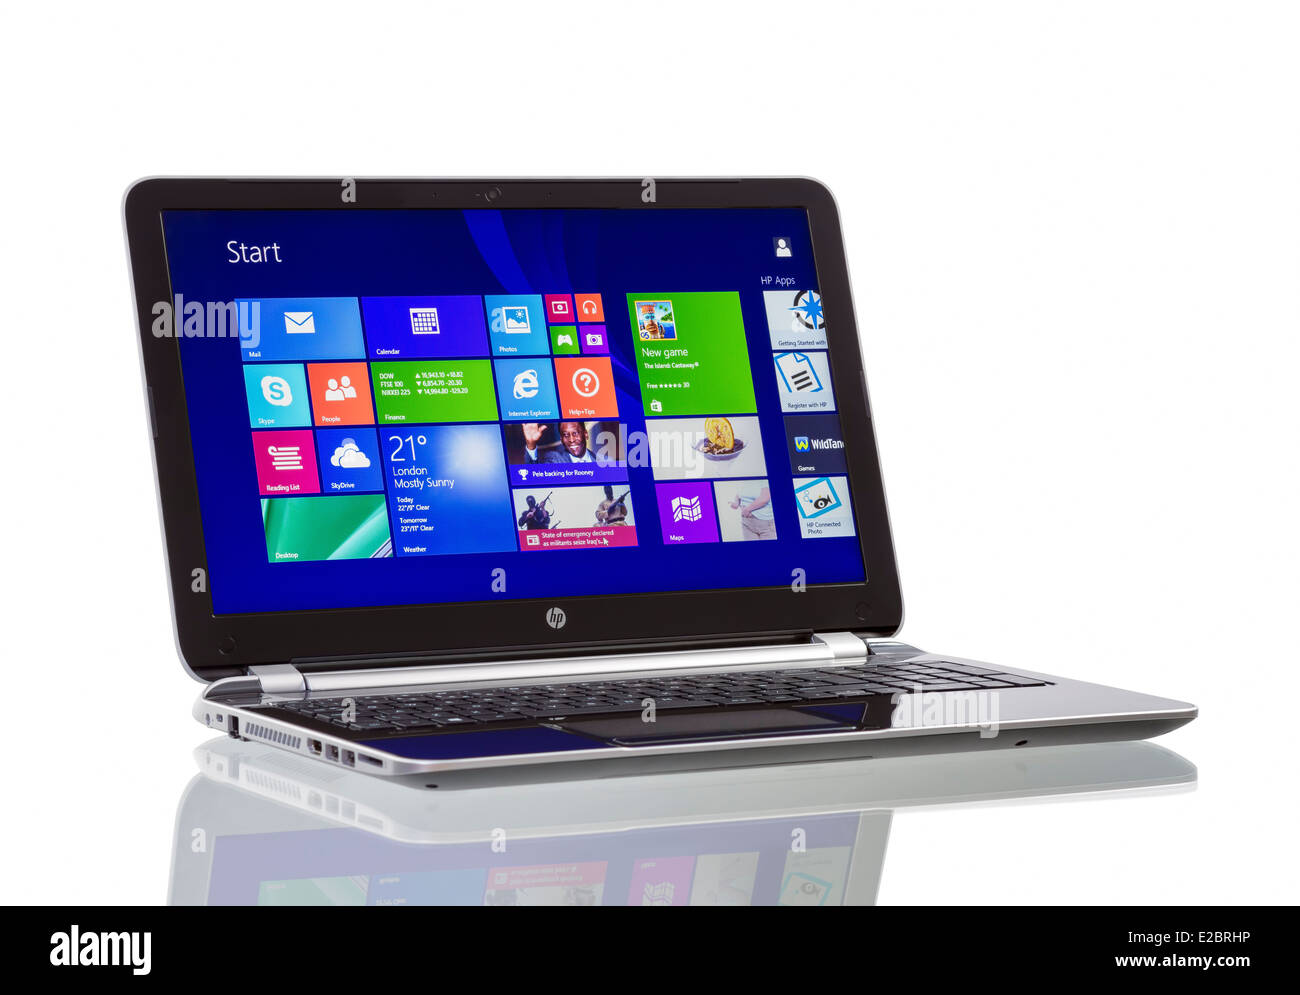 HP Pavilion 15-n230us Notebook PC (ENERGY STAR) with Windows 8.1, newest operating system from Microsoft. - Stock Image